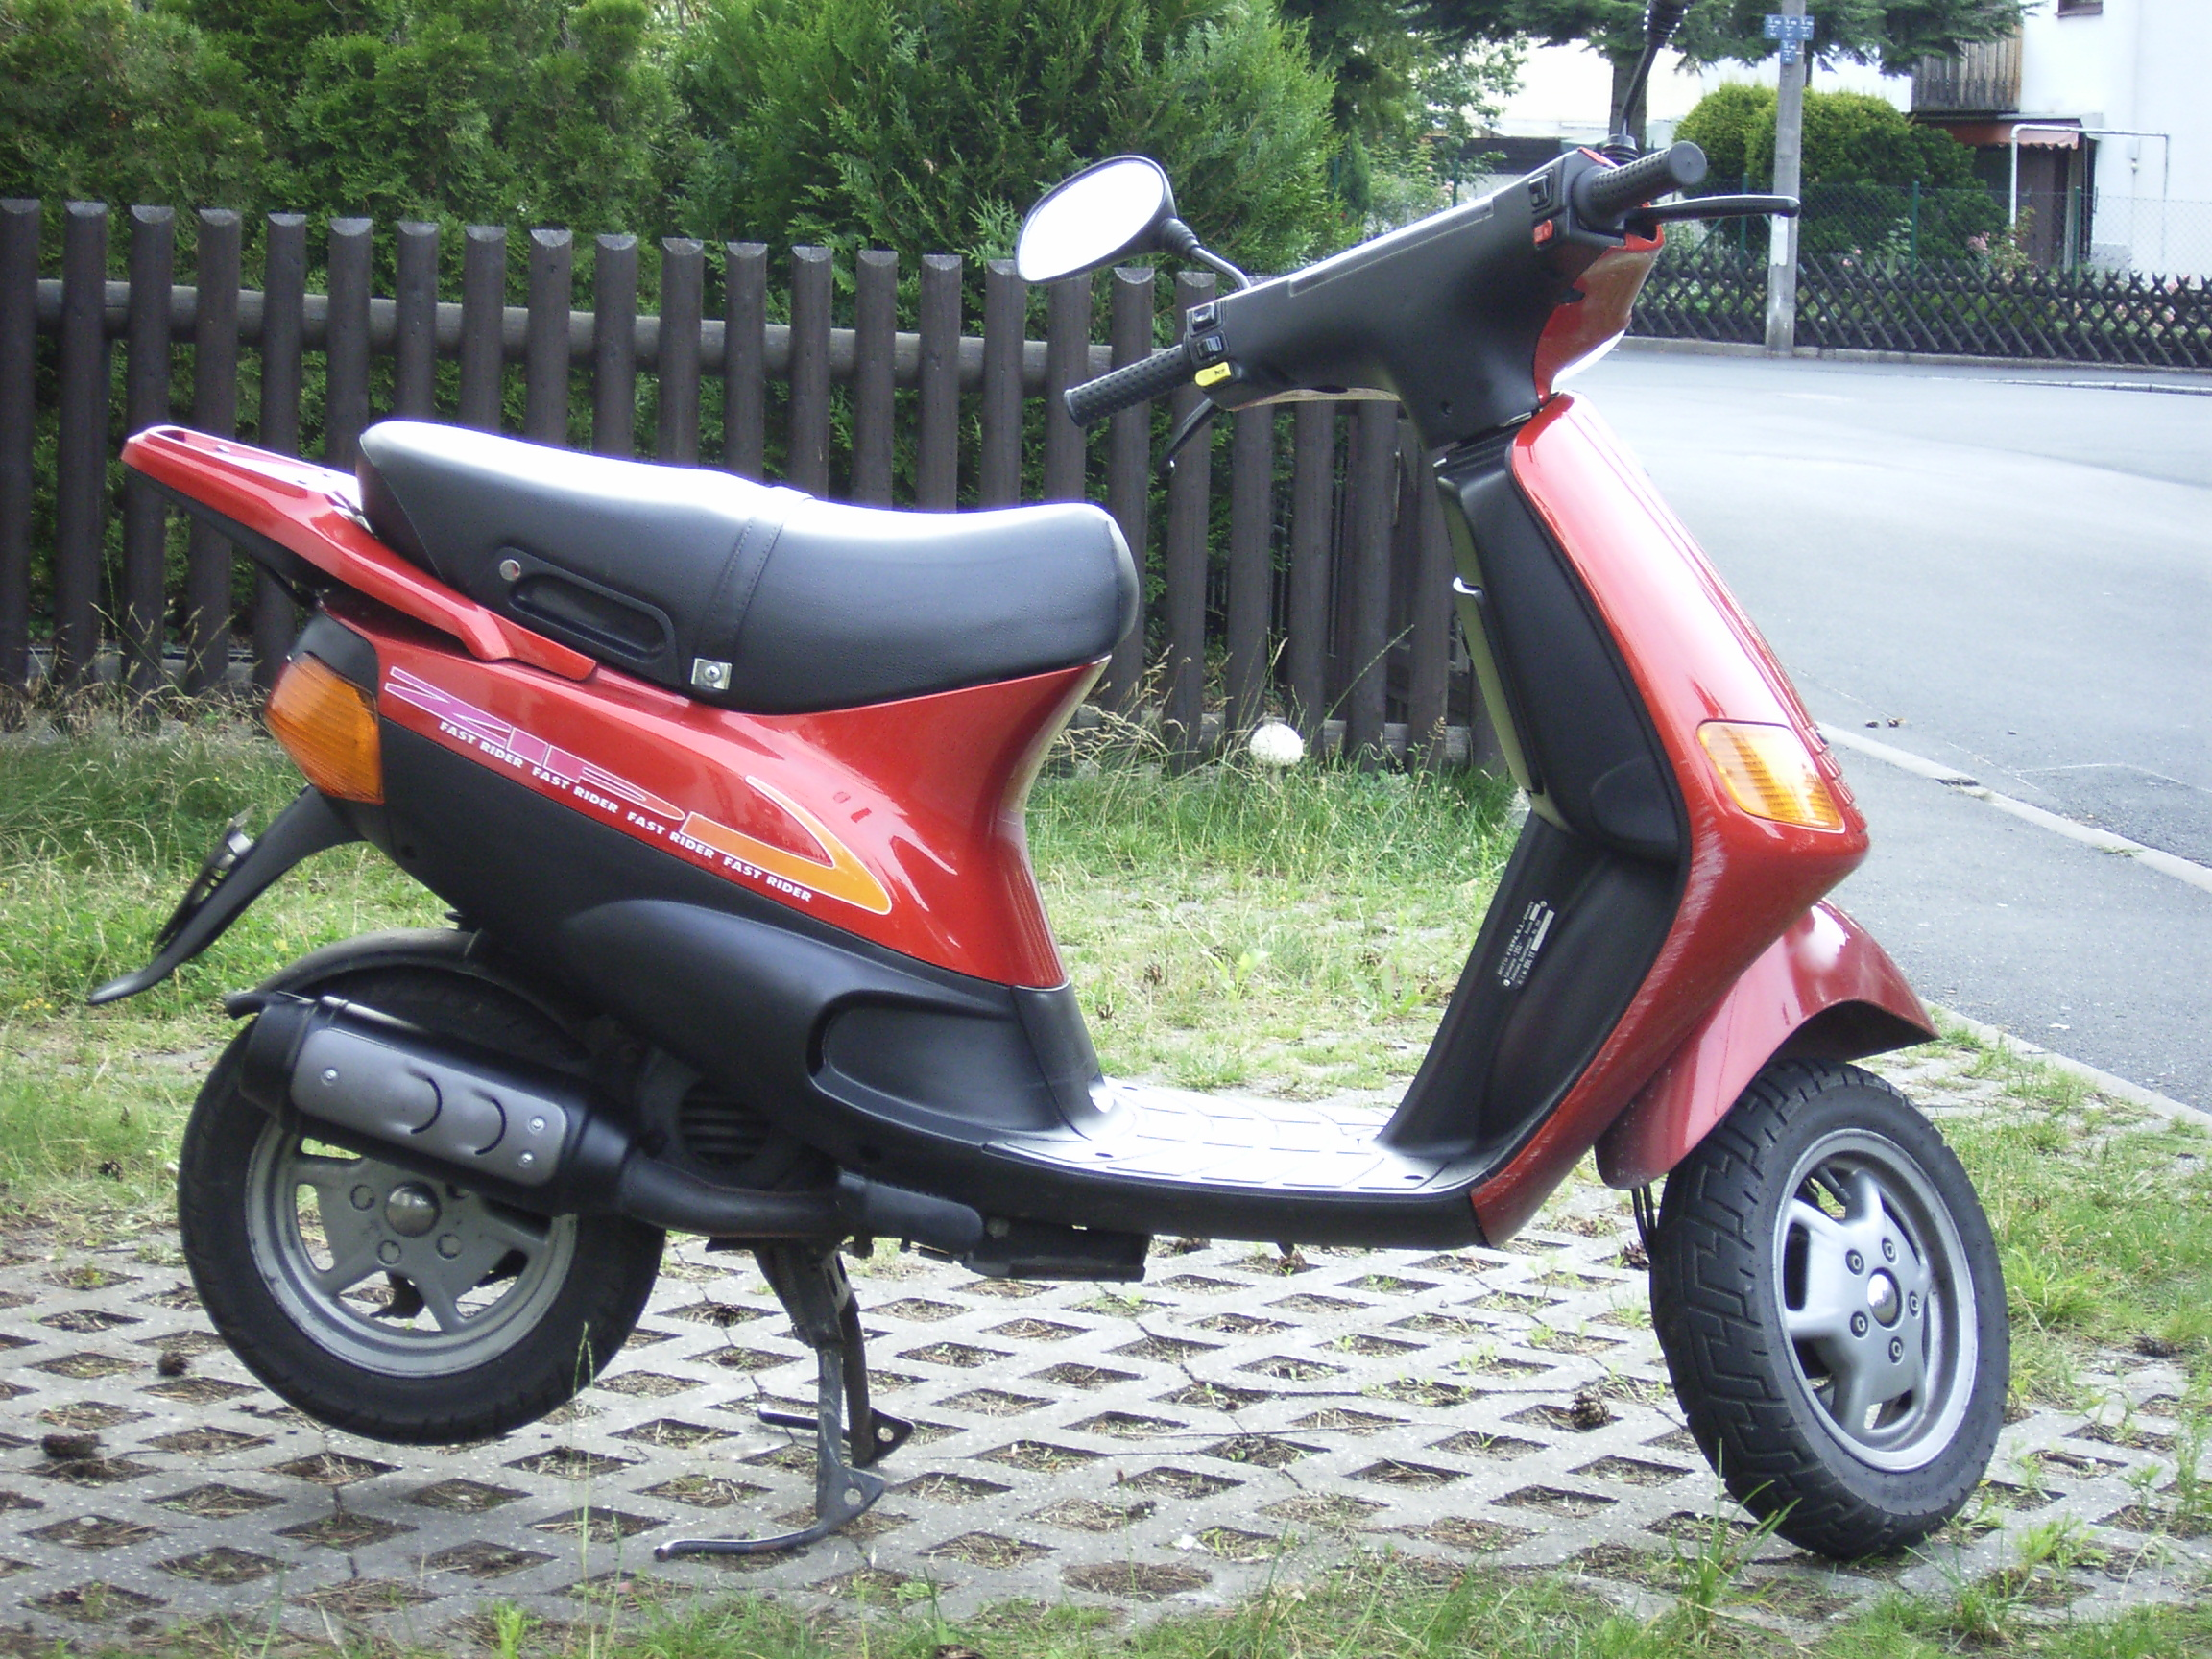 Wonderbaar Piaggio Zip - Wikipedia FL-08